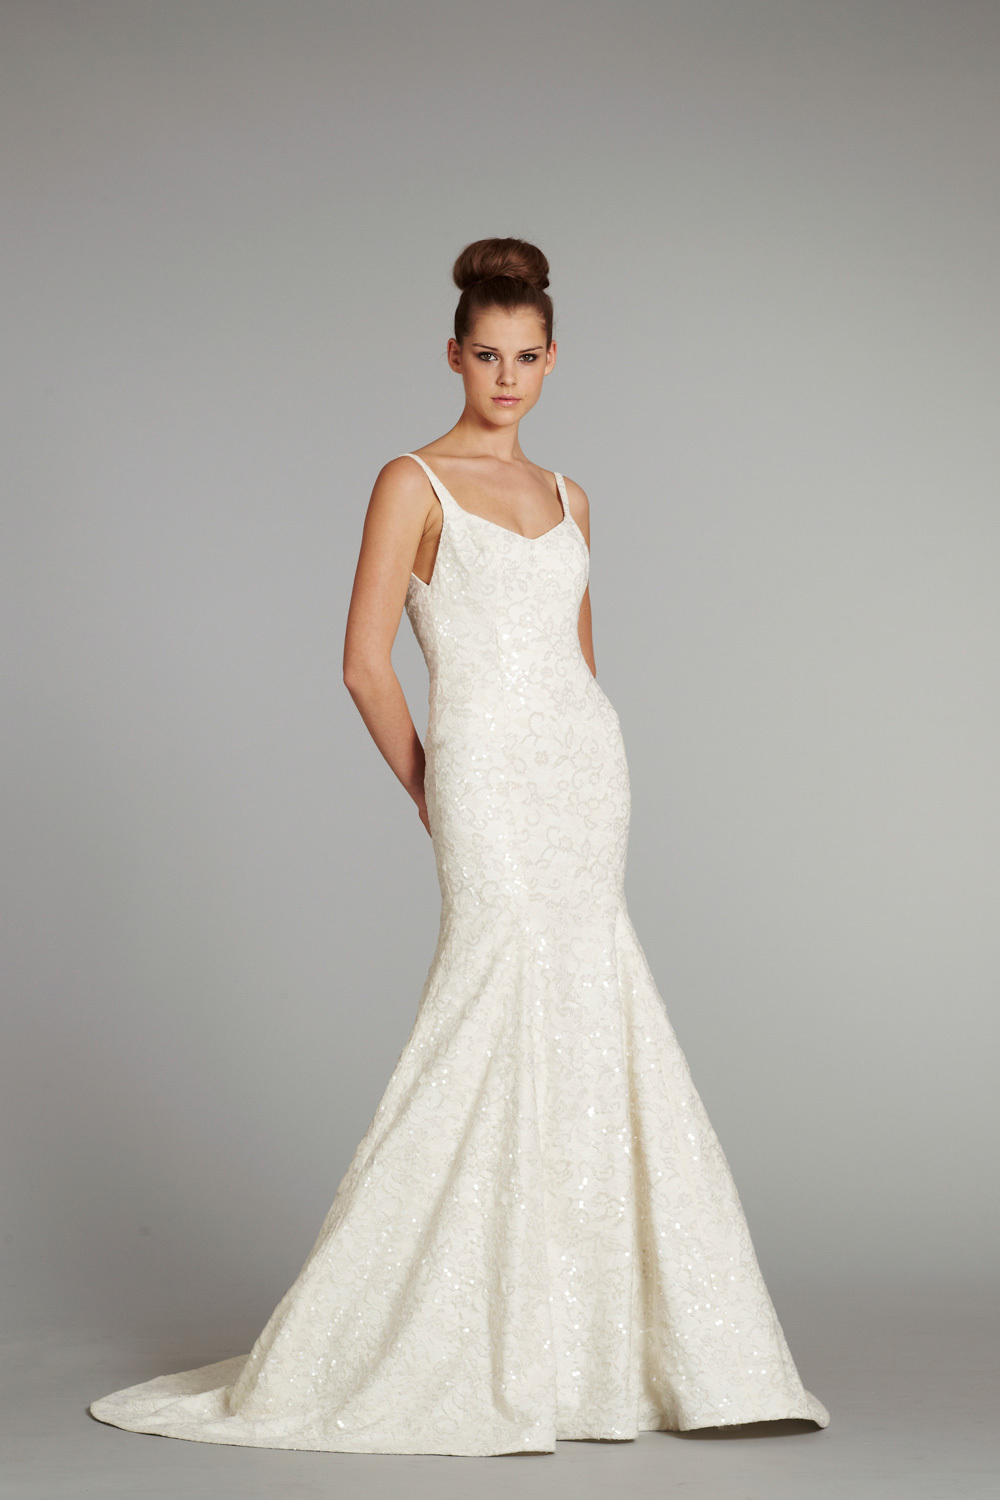 Bridal-gown-wedding-dress-jlm-hayley-paige-fall-2012-vanna-front.full